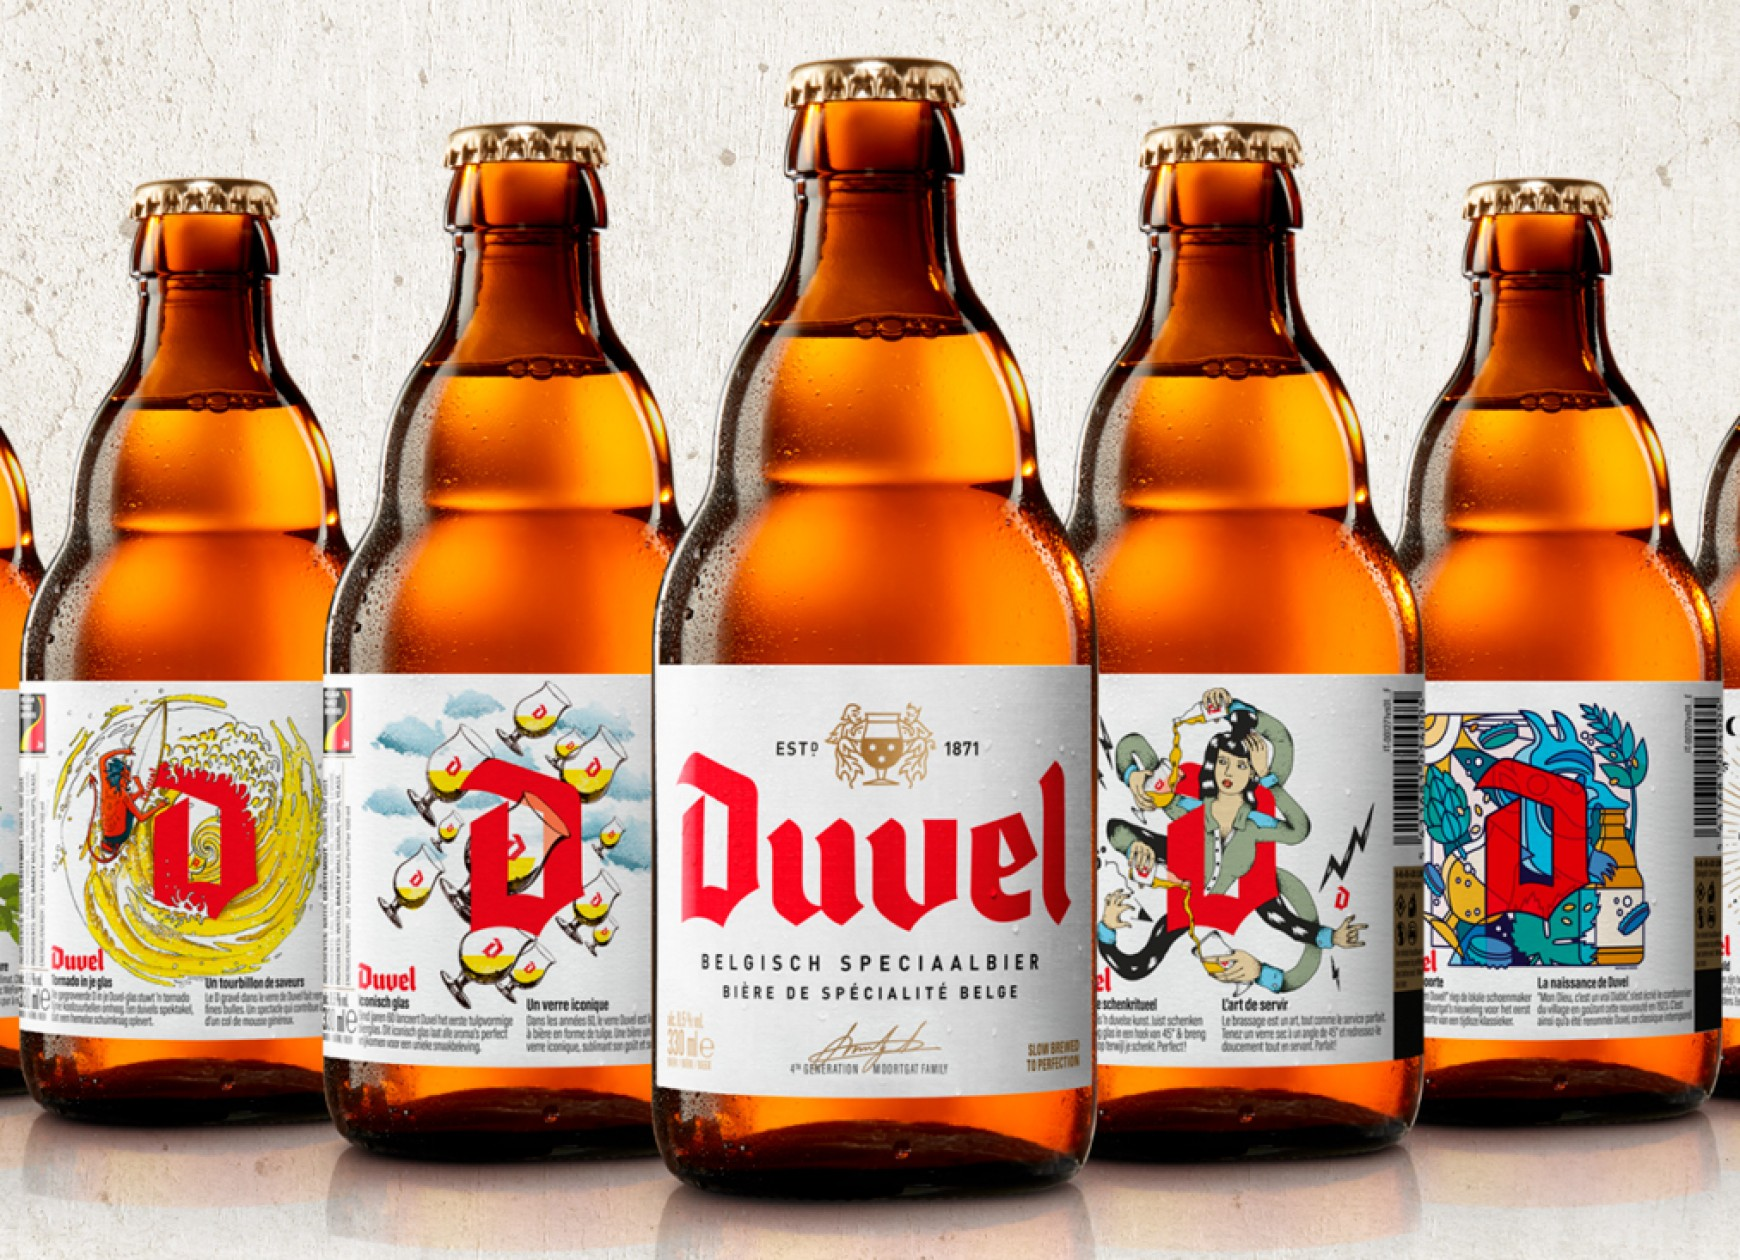 Quatre Mains package design - Package design duvel, restyling, update, quatre mains